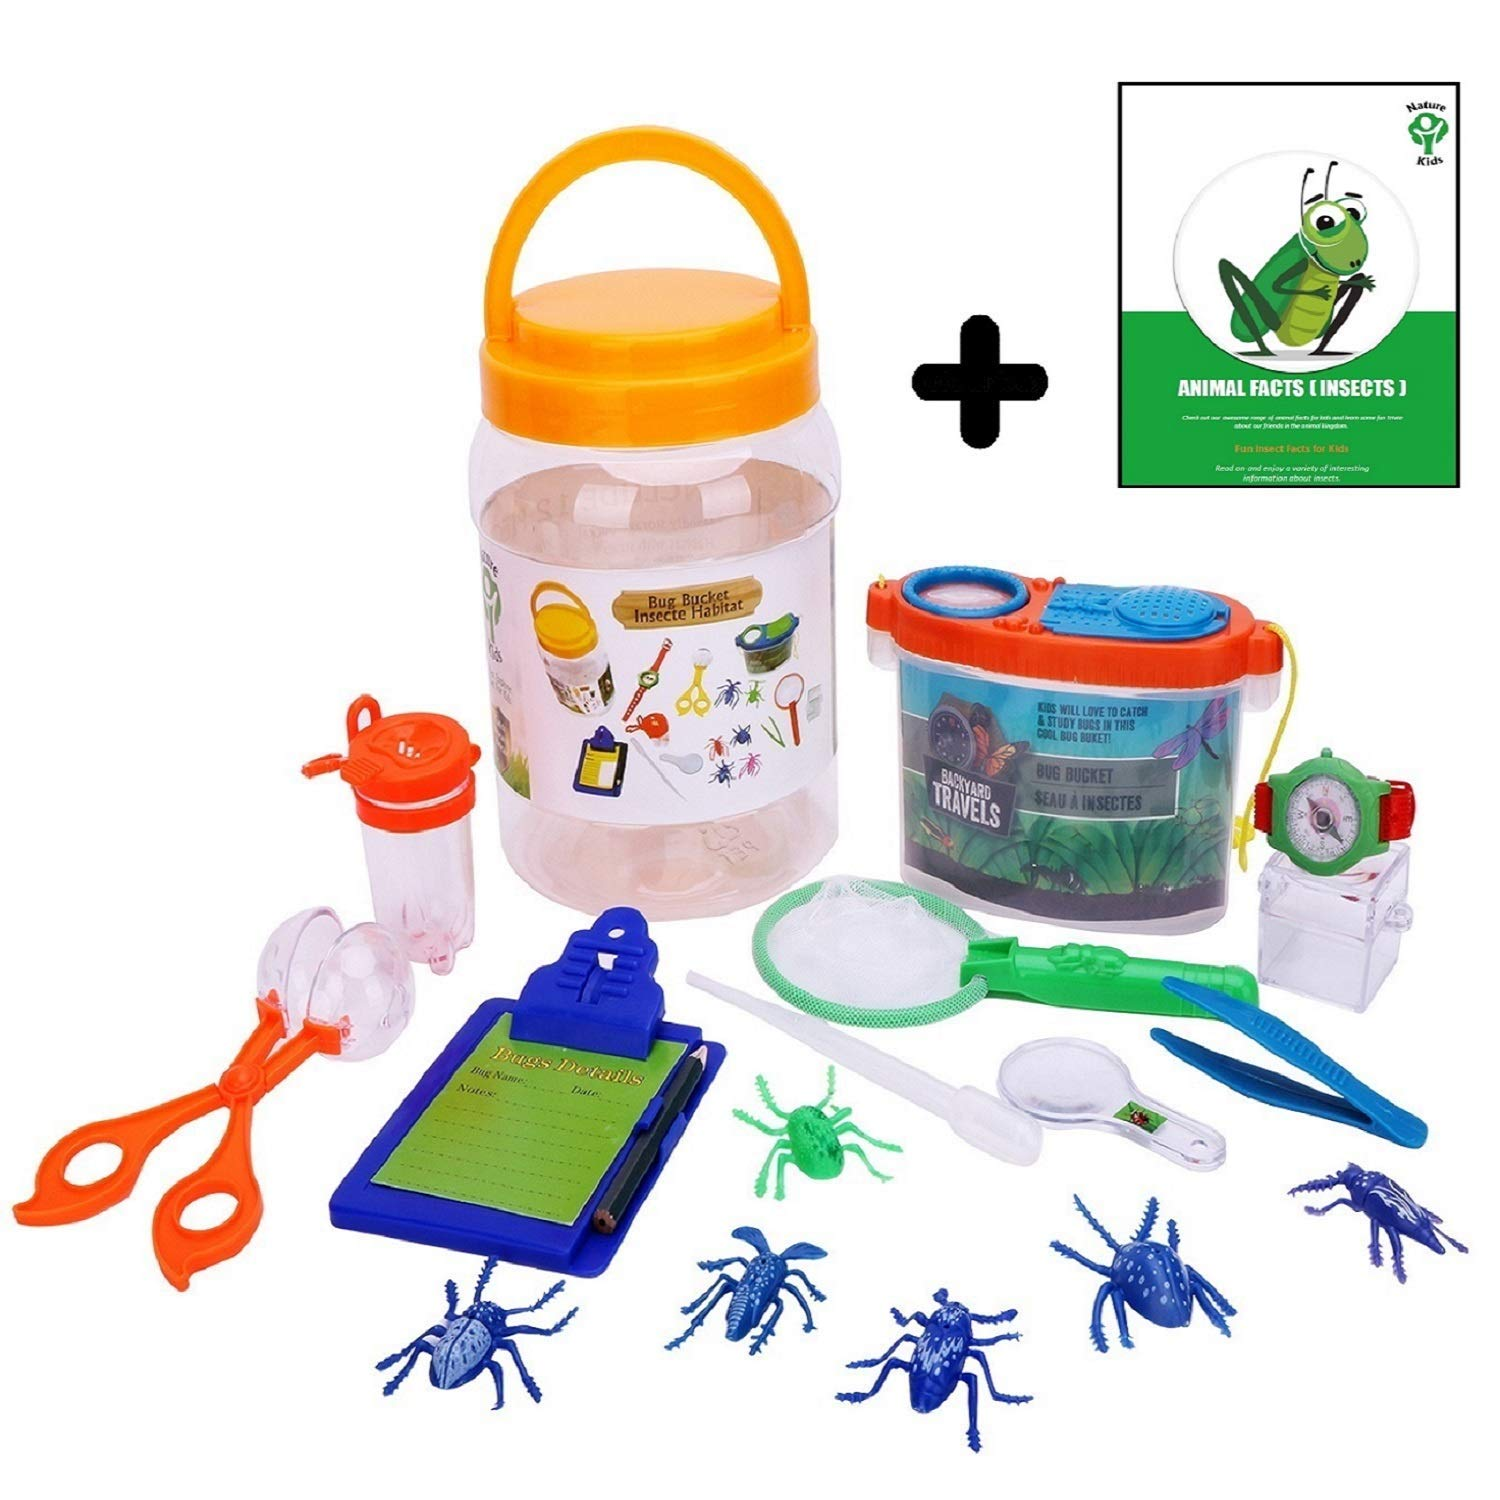 . Adventure kids bug catcher kit